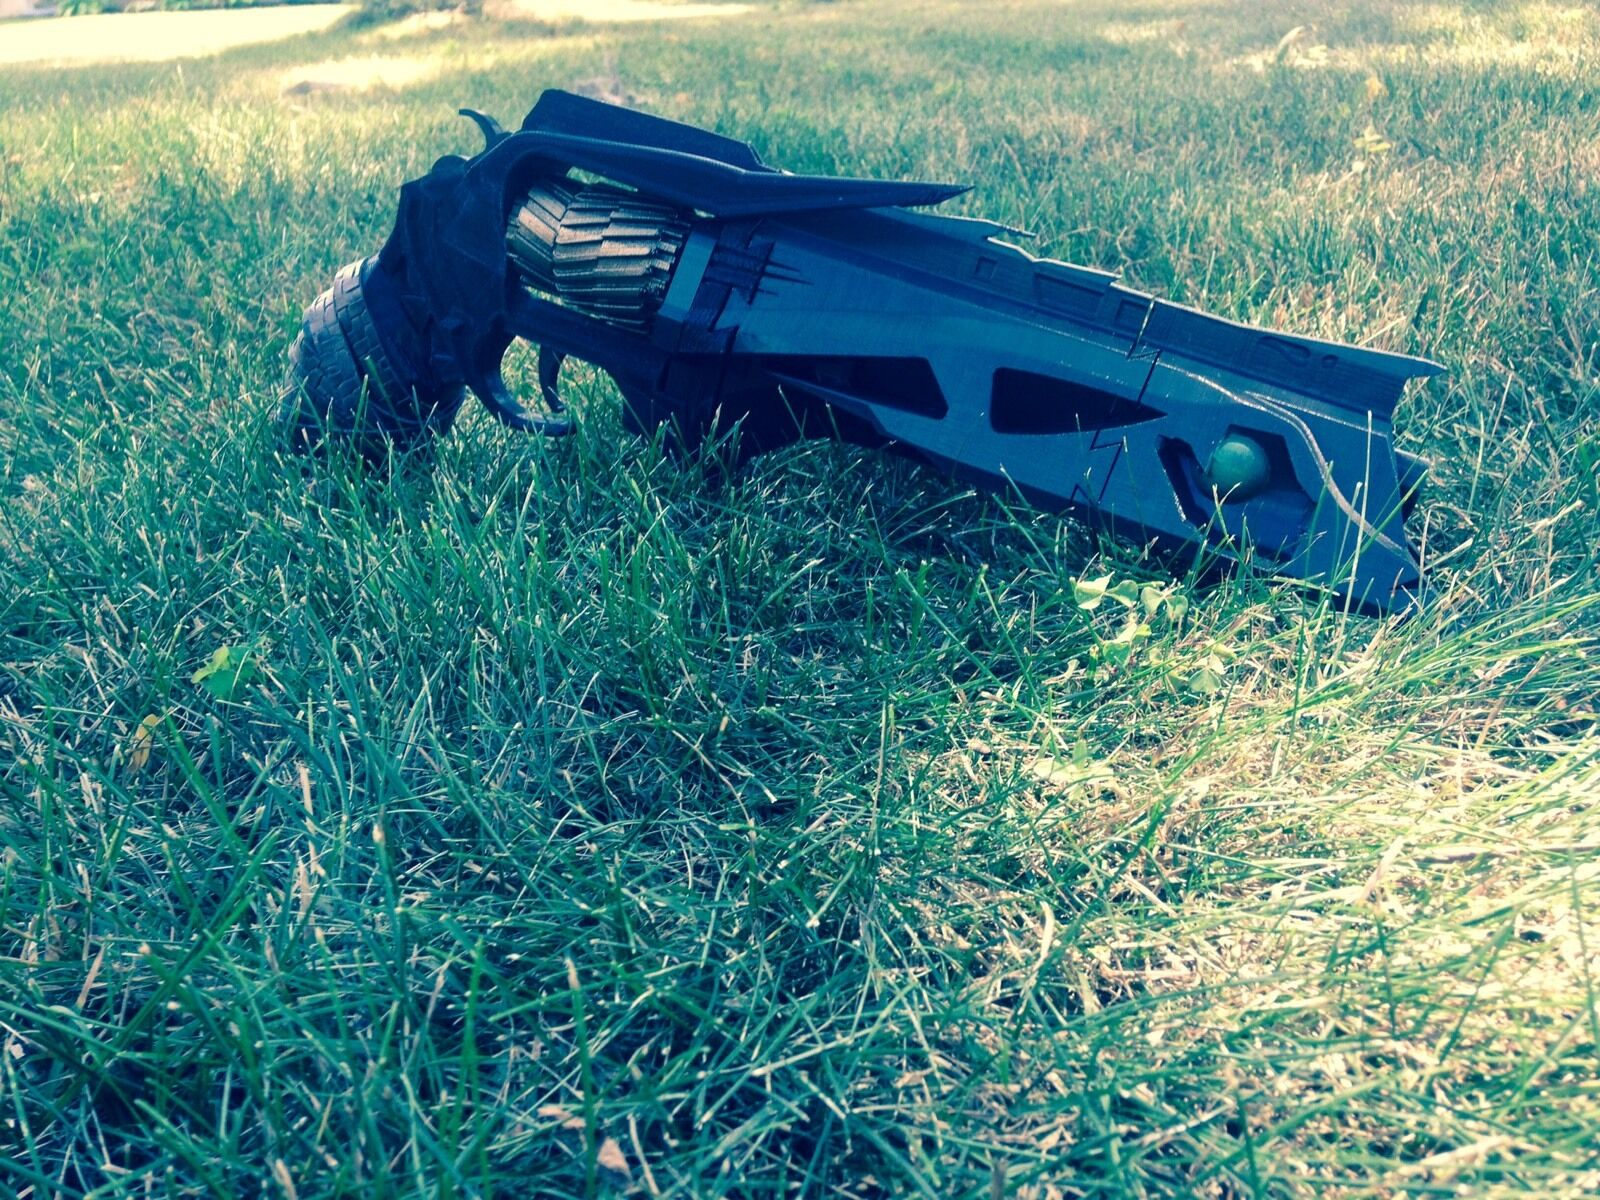 Thorn Replica Hand Cannon Gun Full Size 16  Cosplay Display Prop